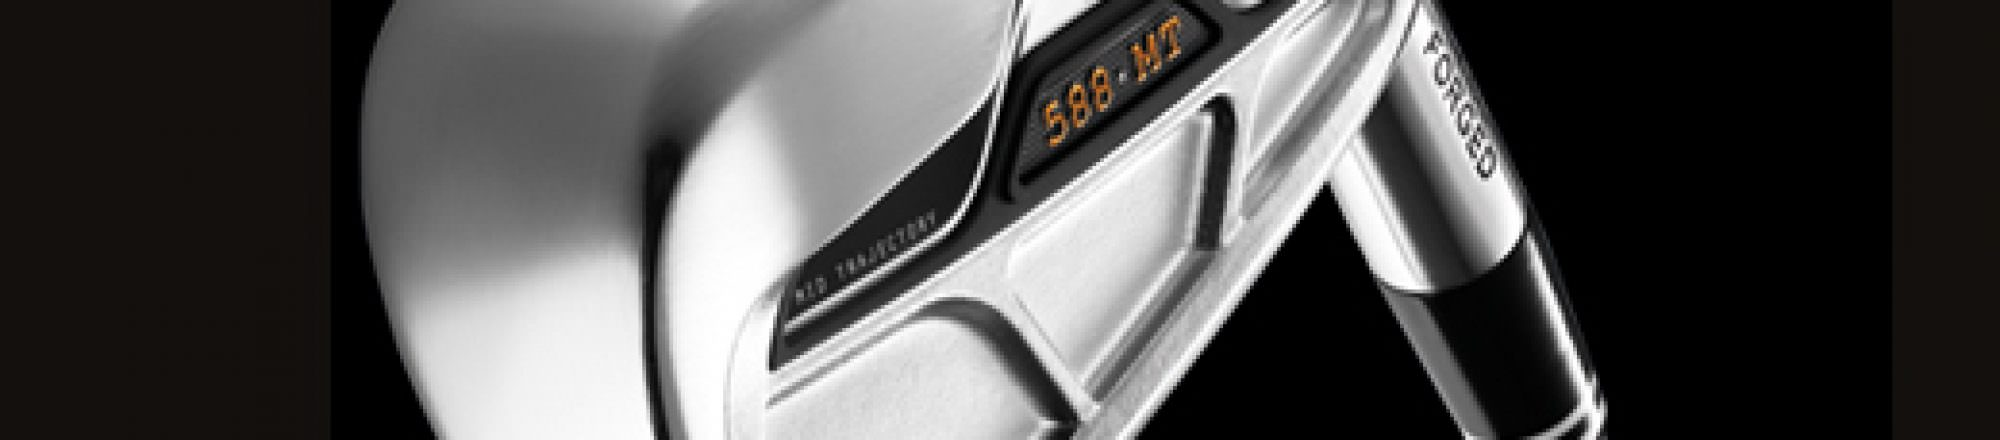 First Look: Cleveland 588 Altitude MT & TT Irons review